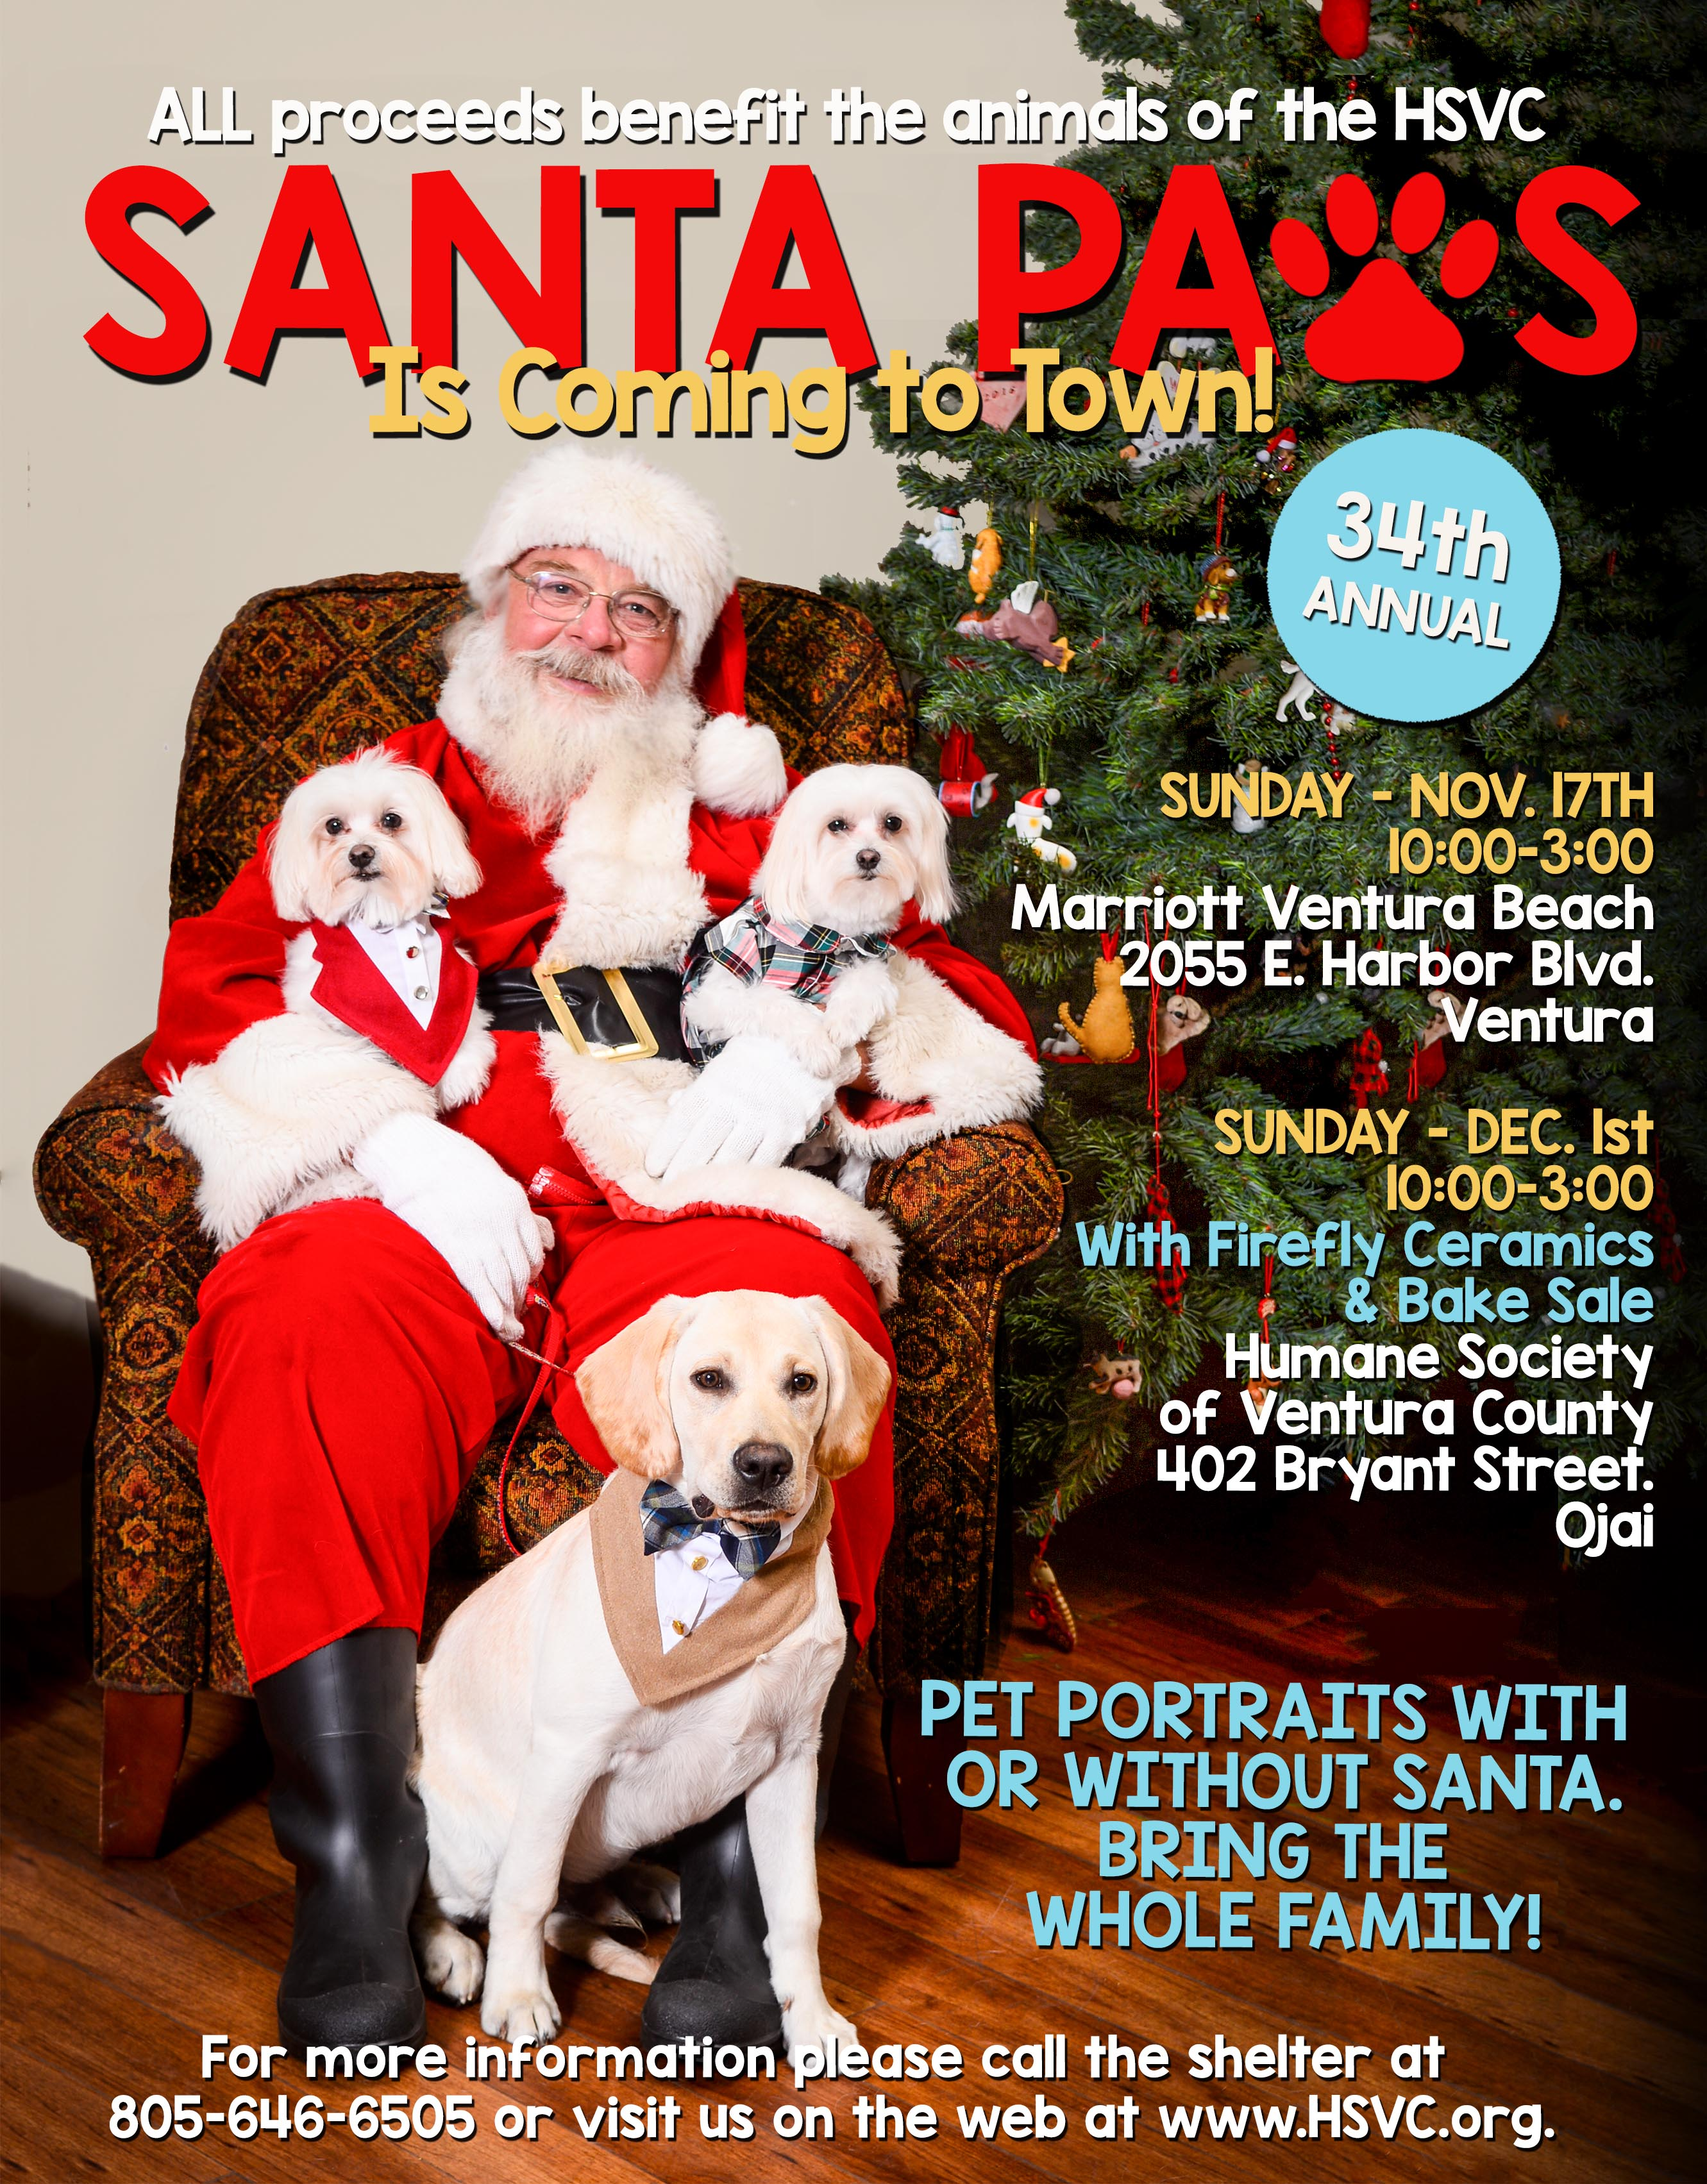 santa.paws.flyer_web_2019.jpg